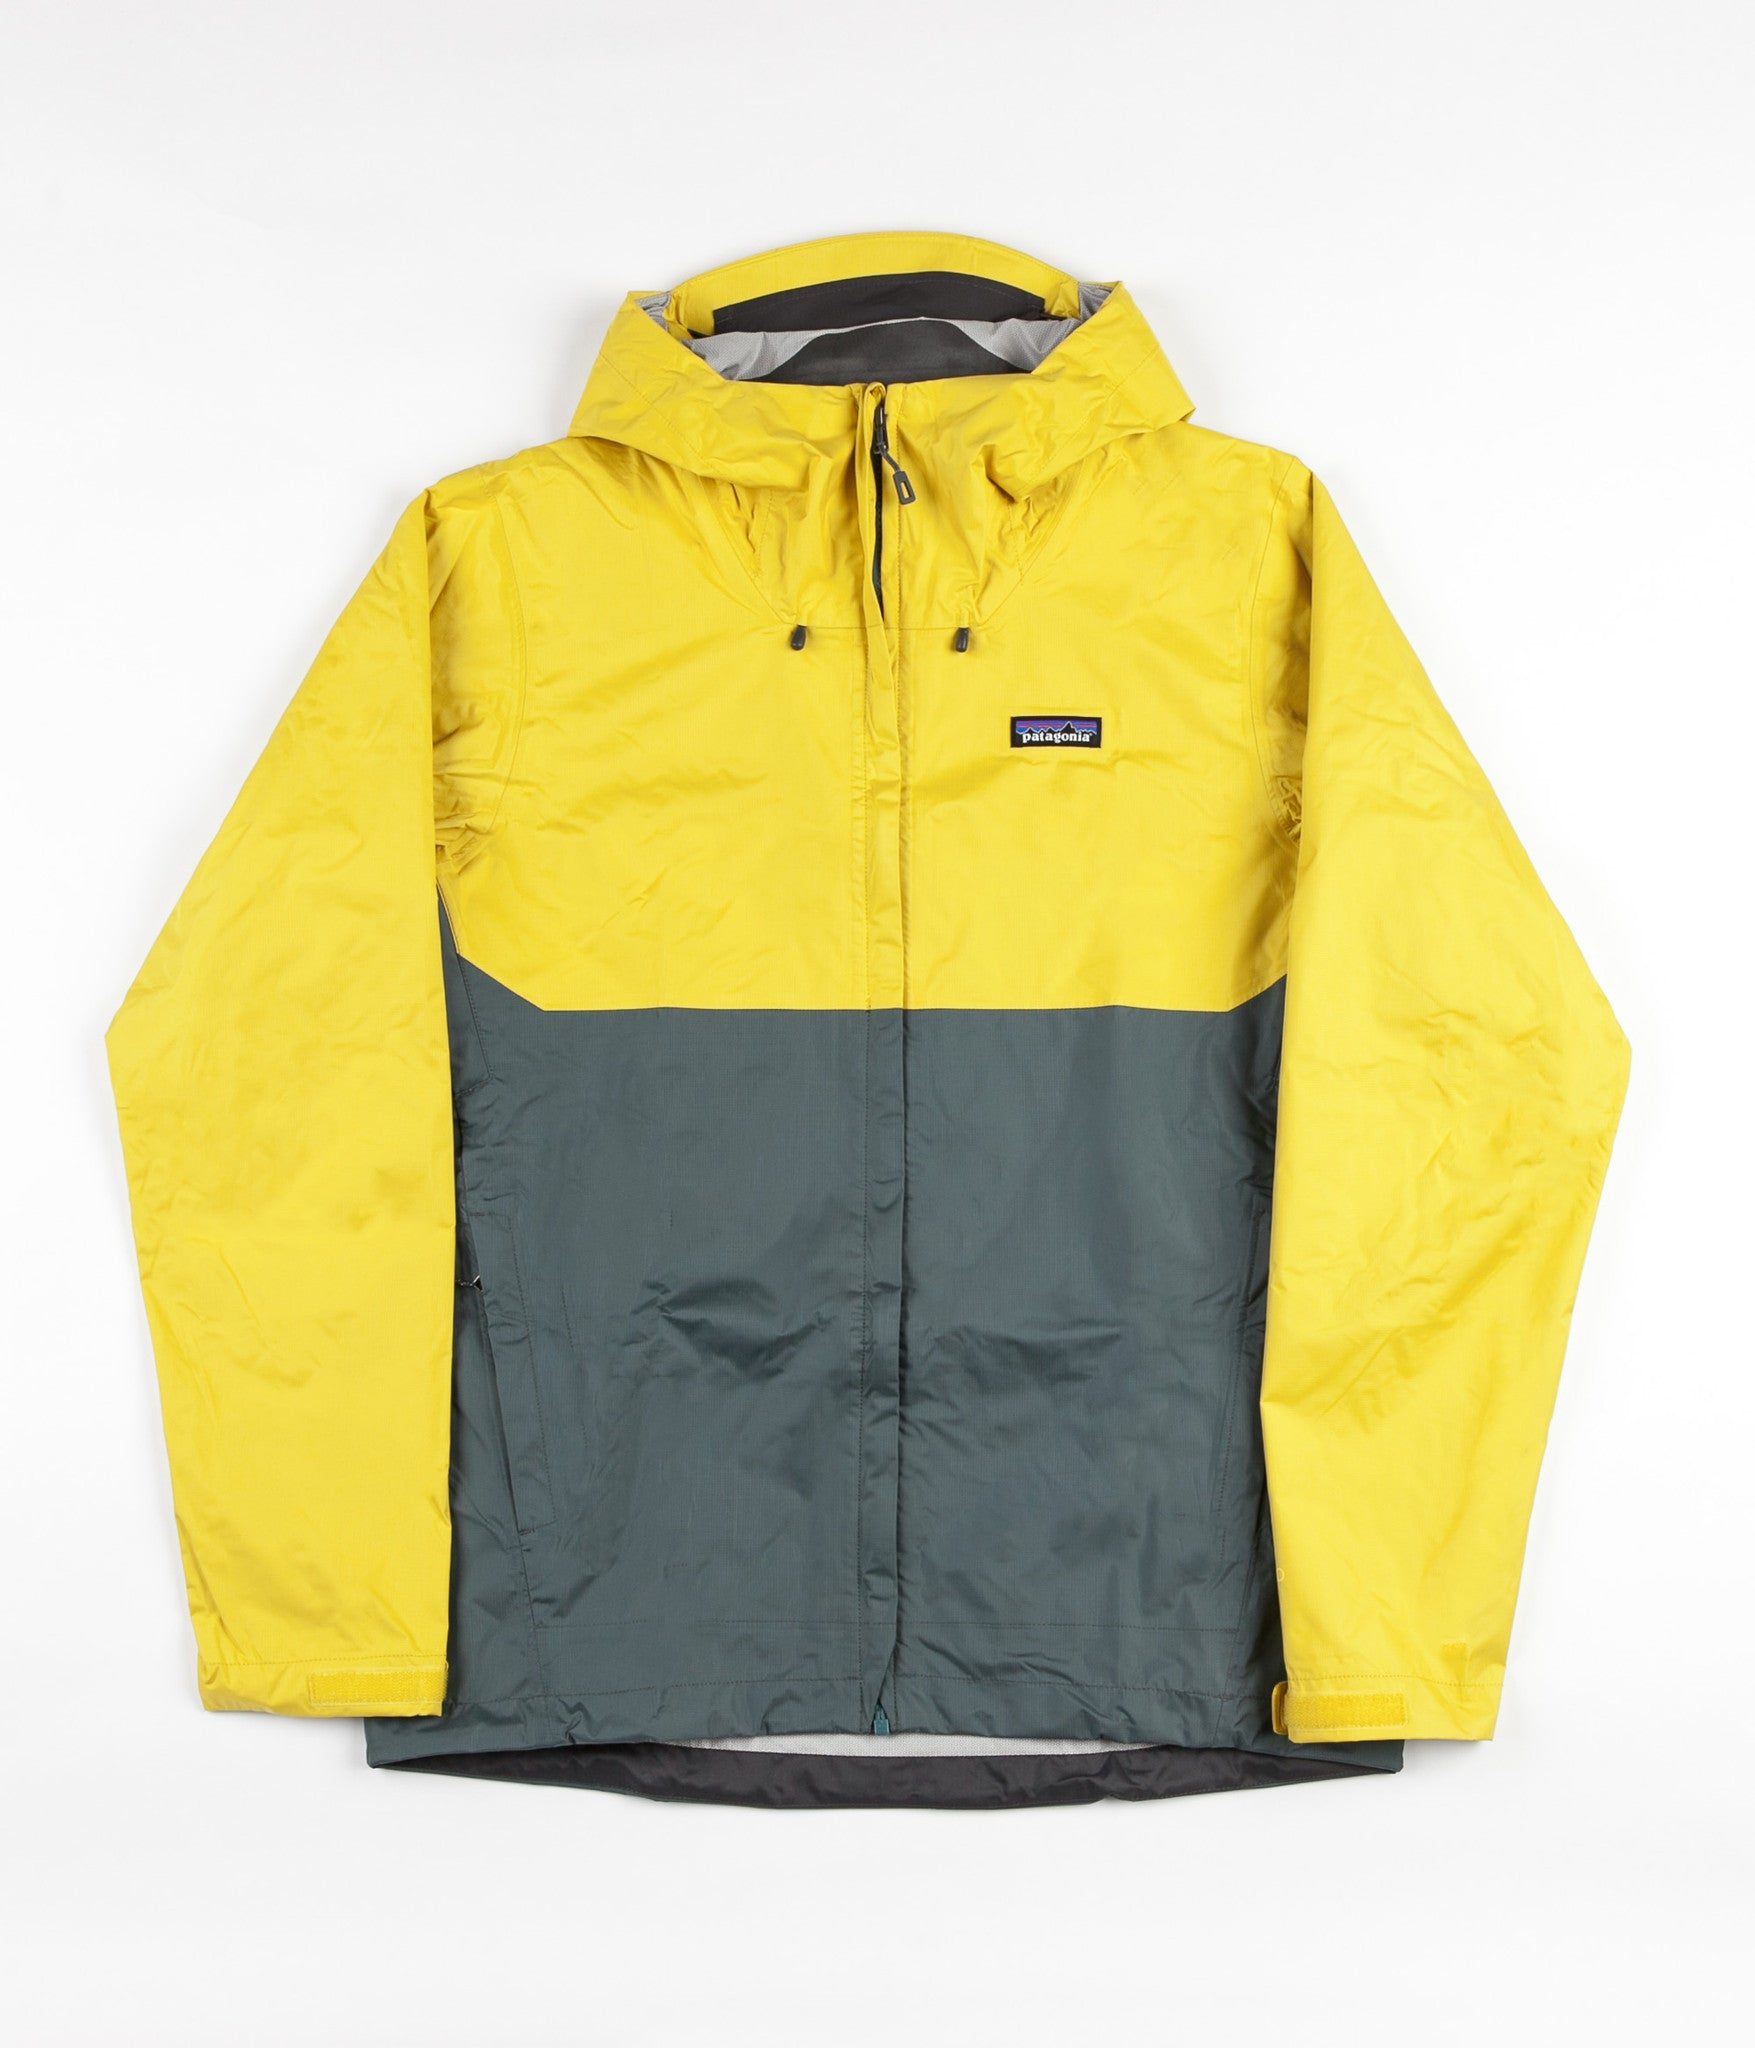 Patagonia Torrentshell Jacket - Chromatic Yellow